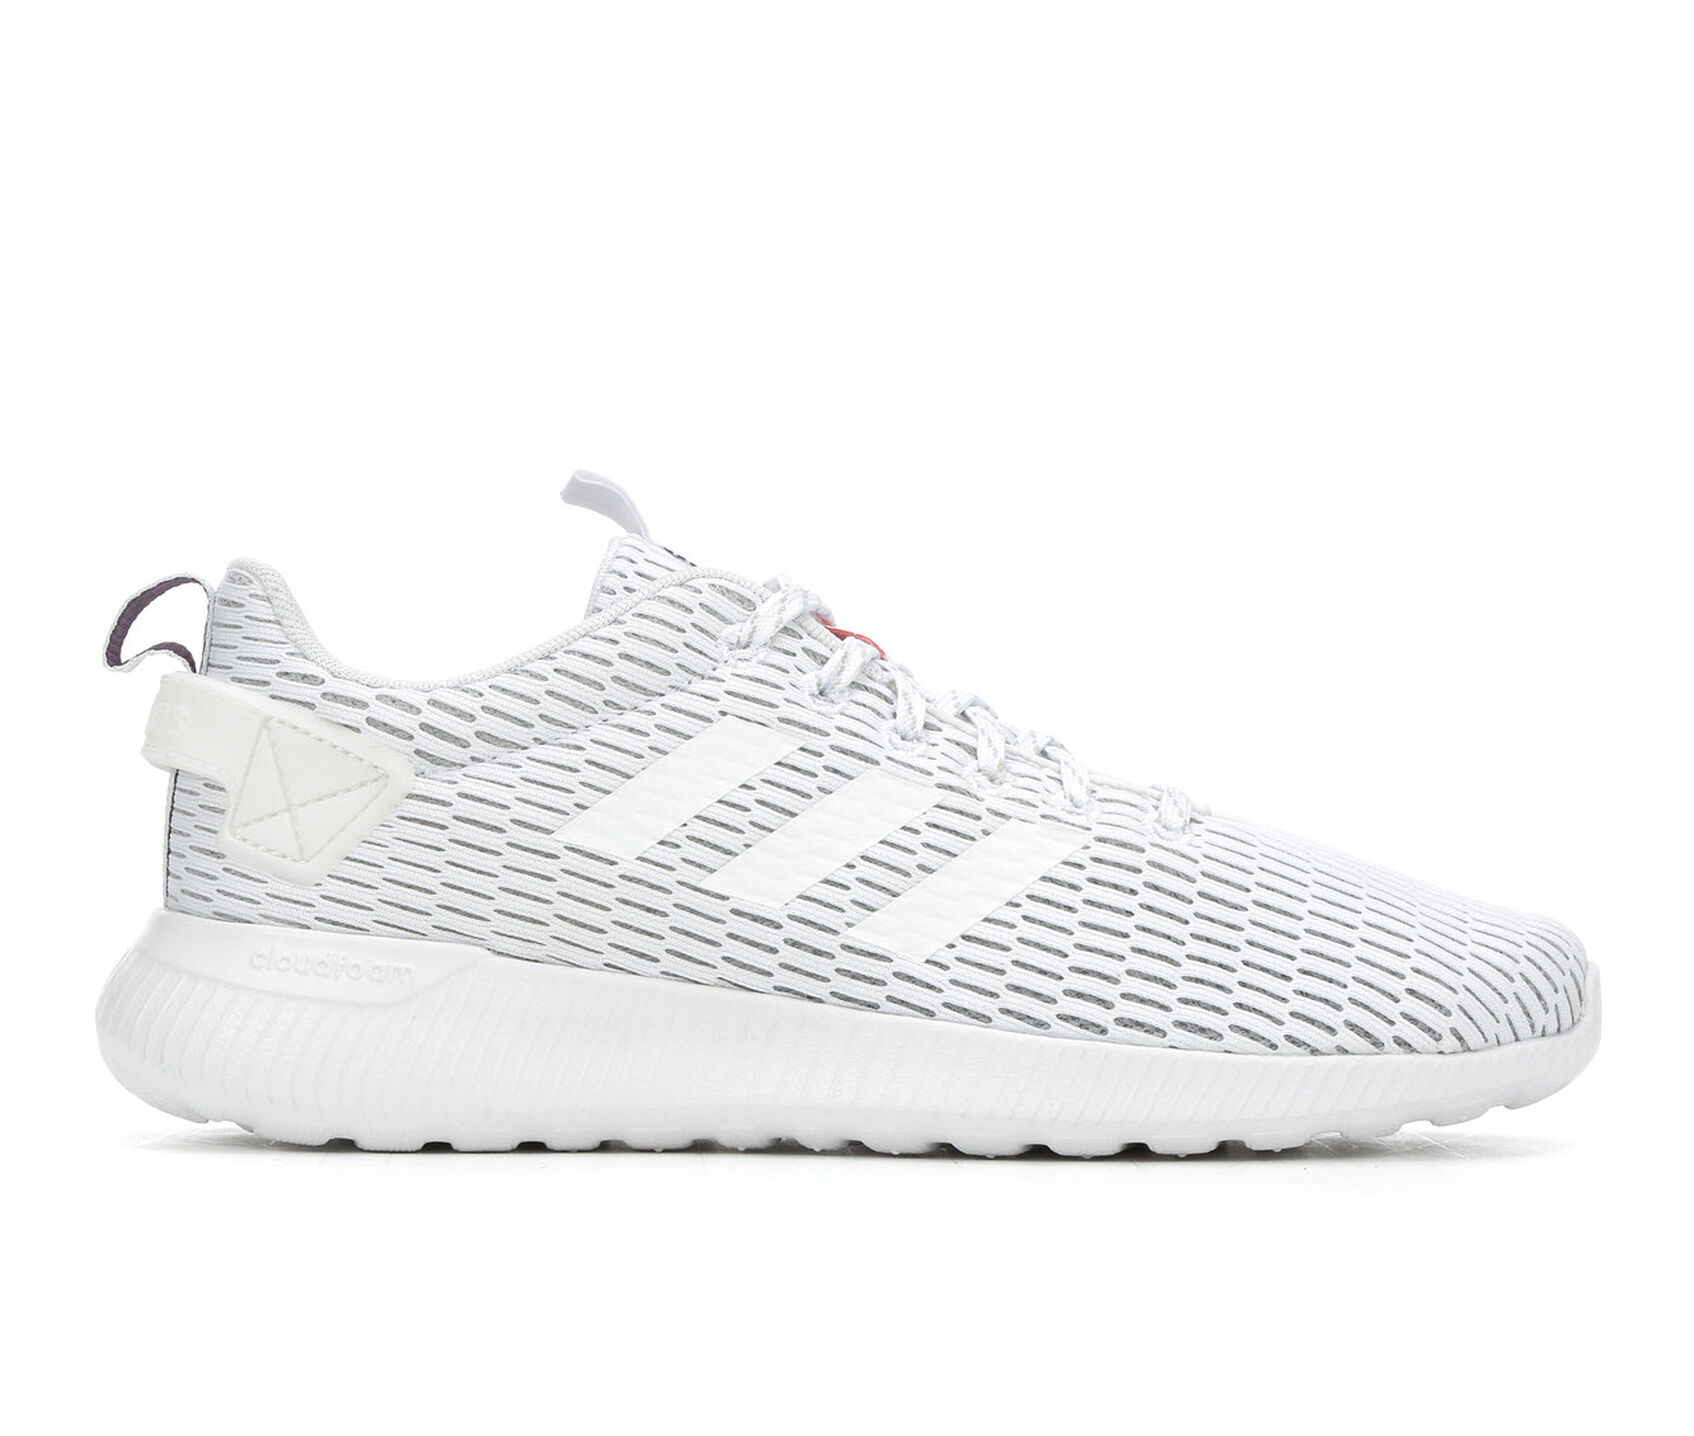 sale retailer 153d9 aef68 Women's Adidas Lite Racer Climacool Sneakers